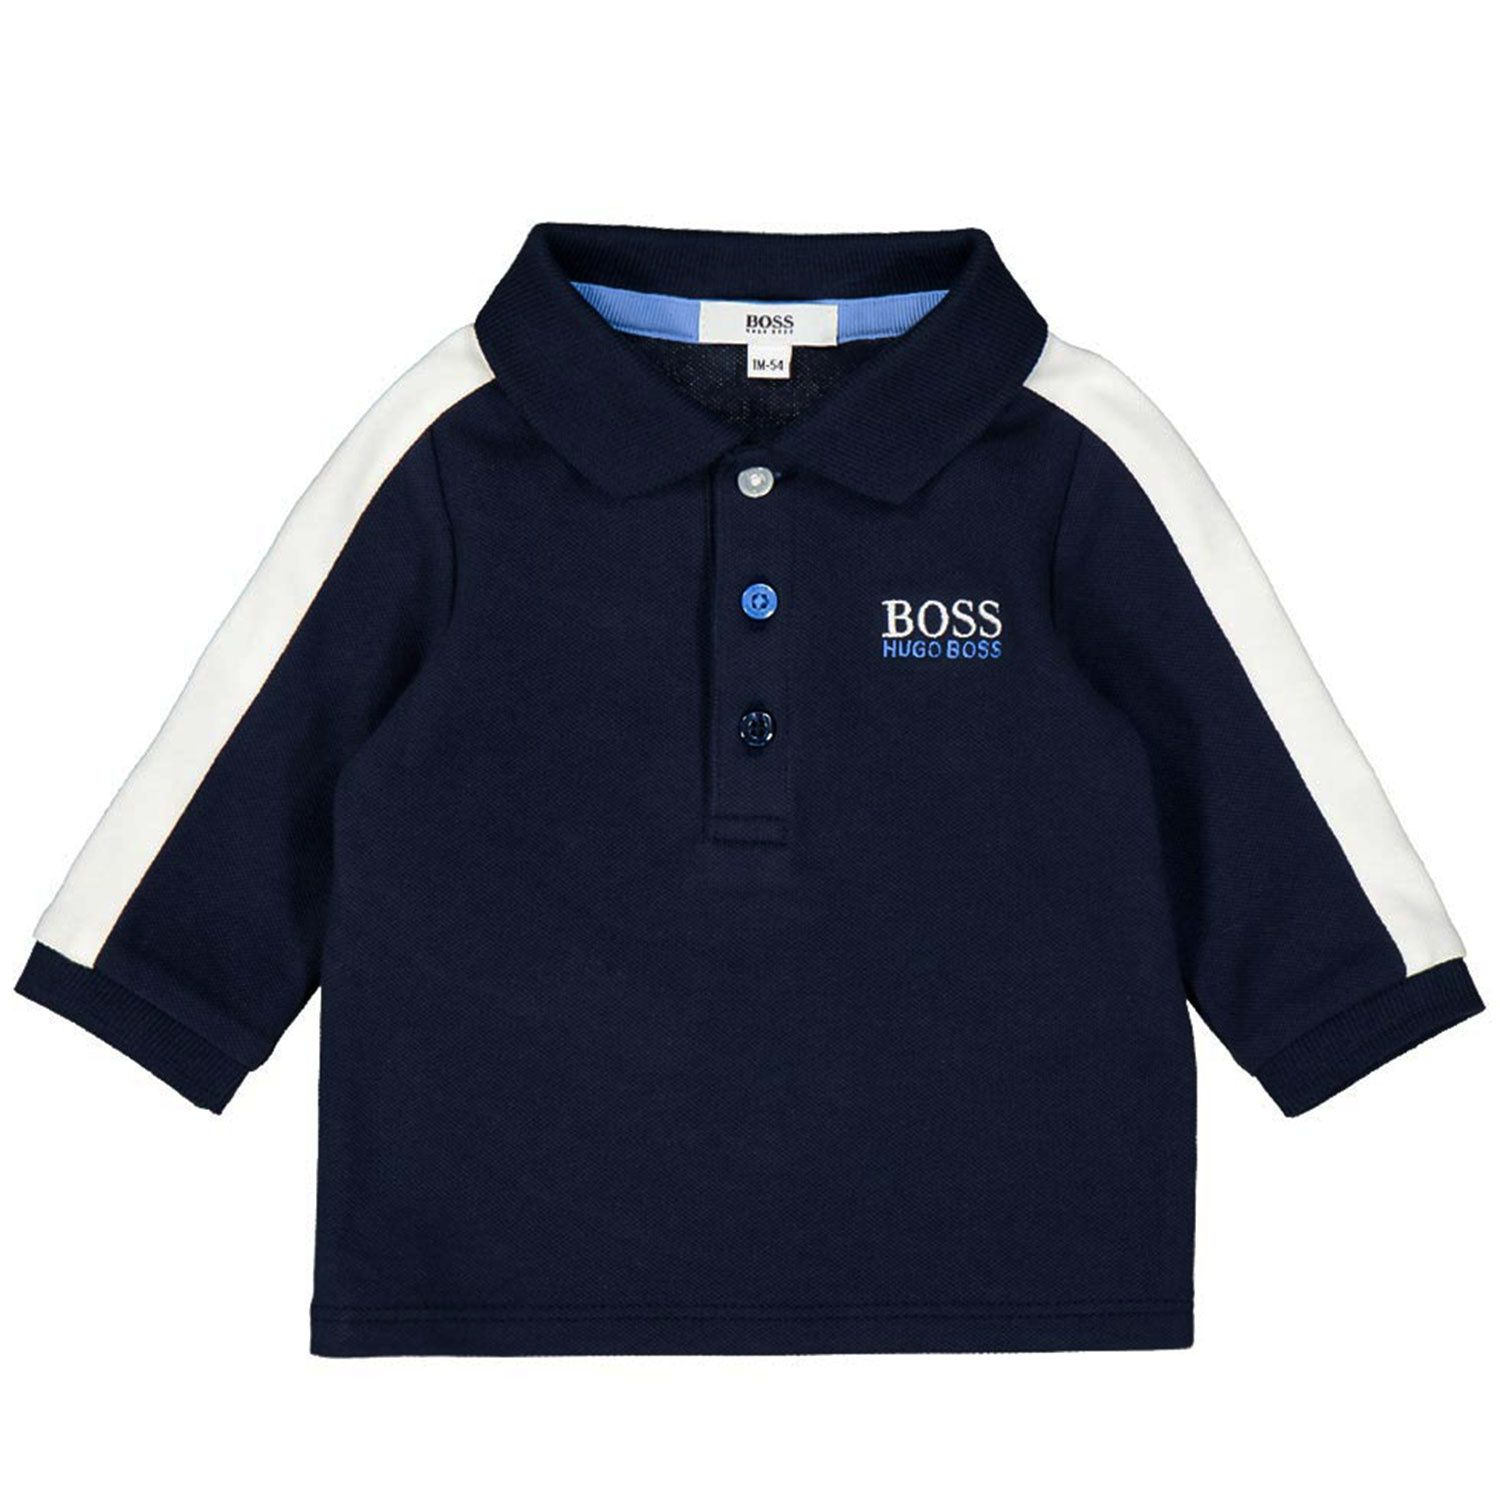 Picture of Boss J95294 baby poloshirt navy